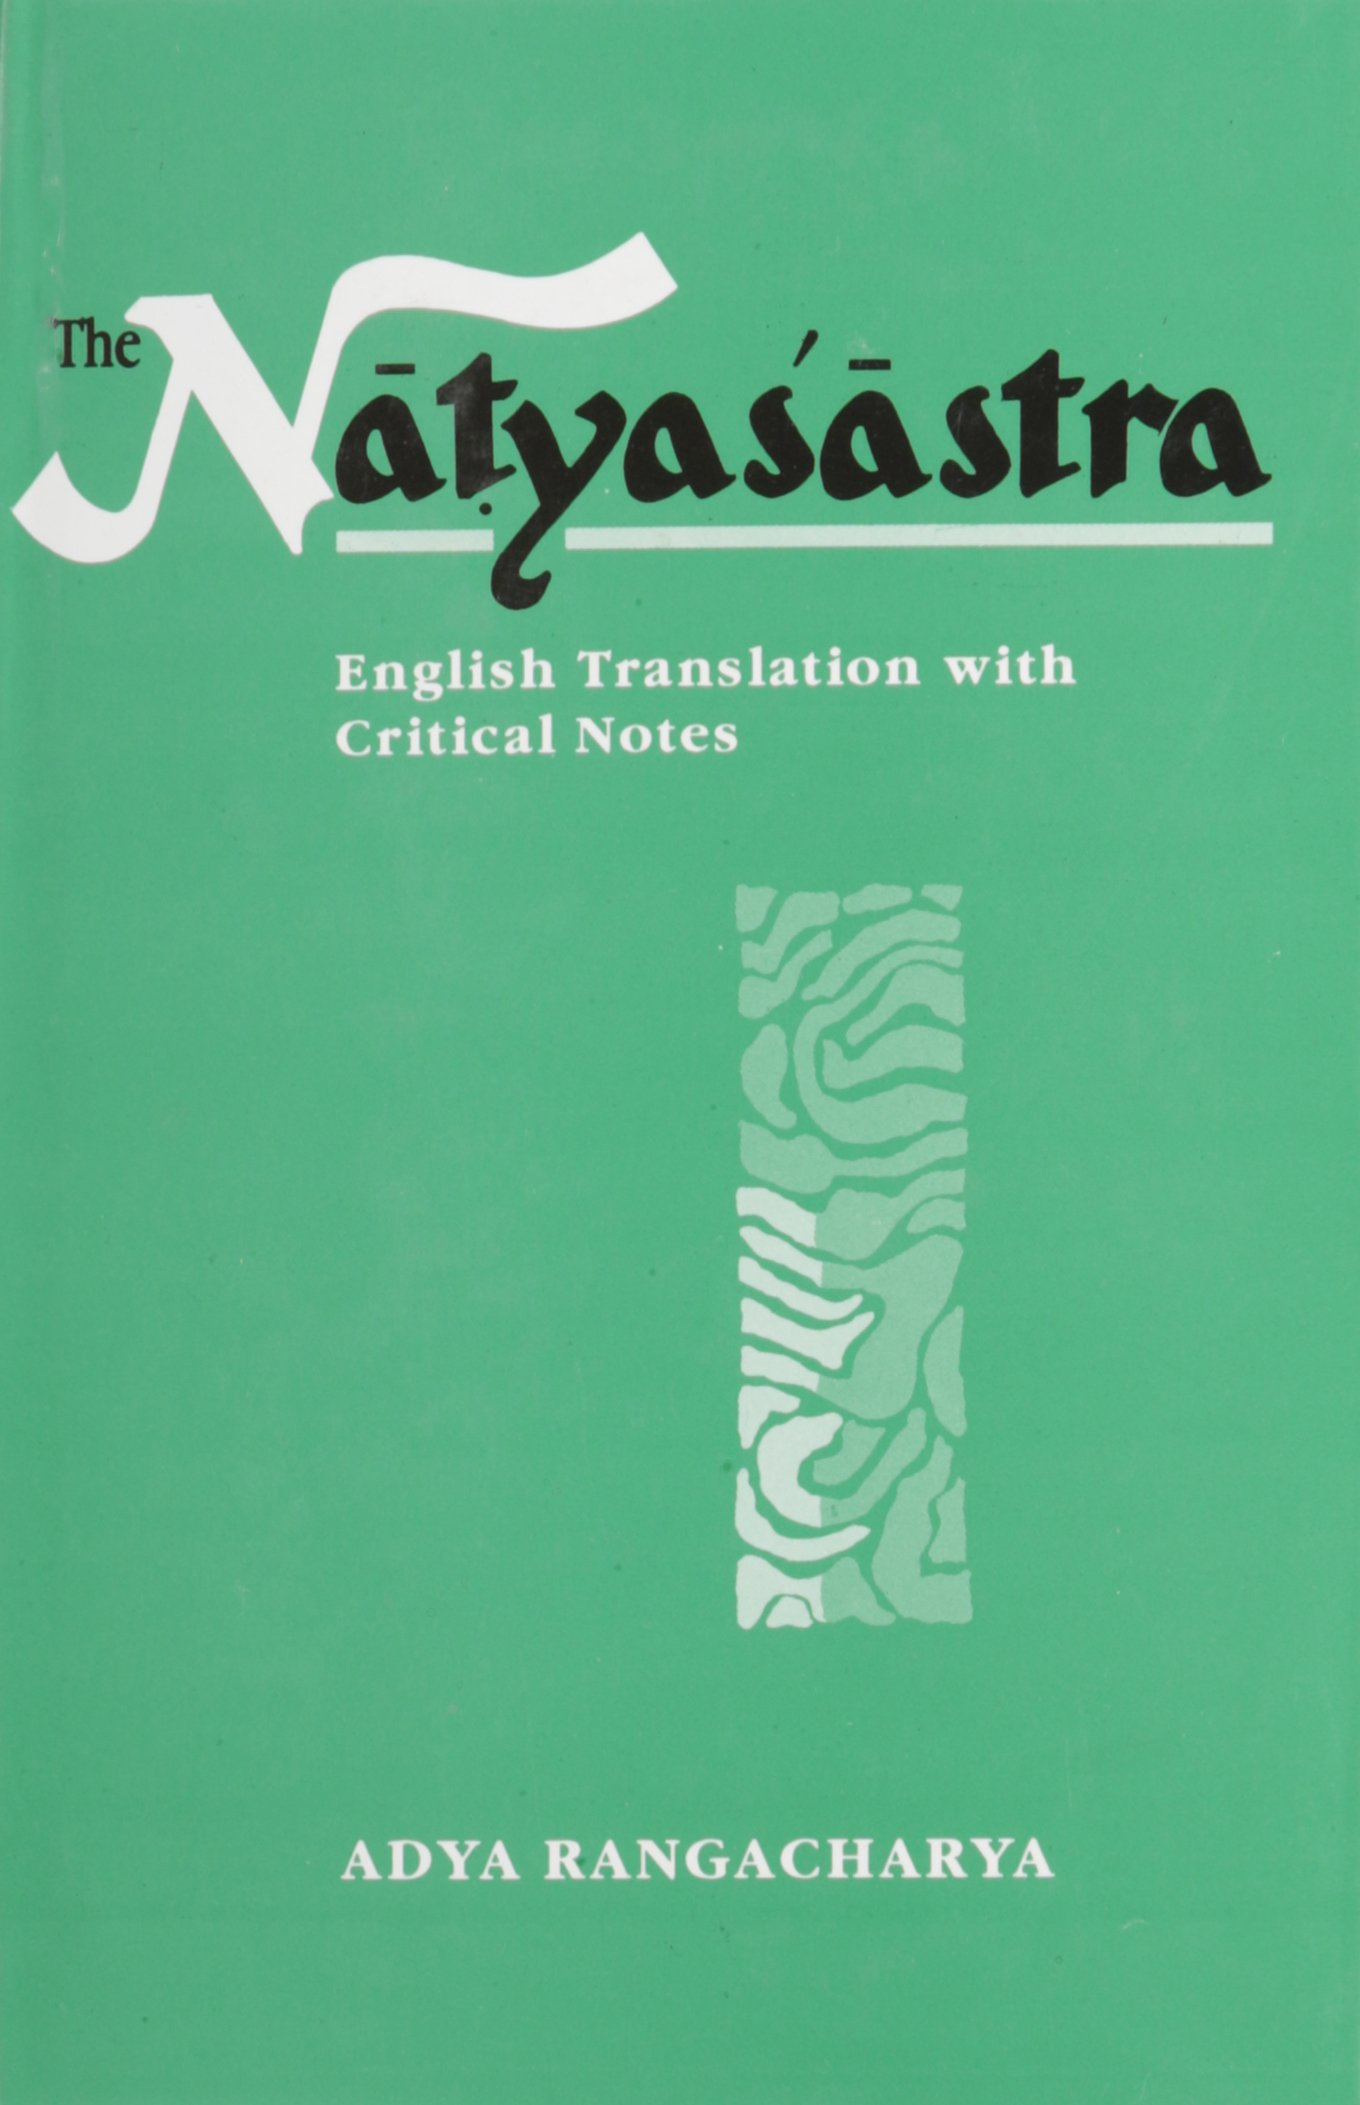 The Natyasatra; The